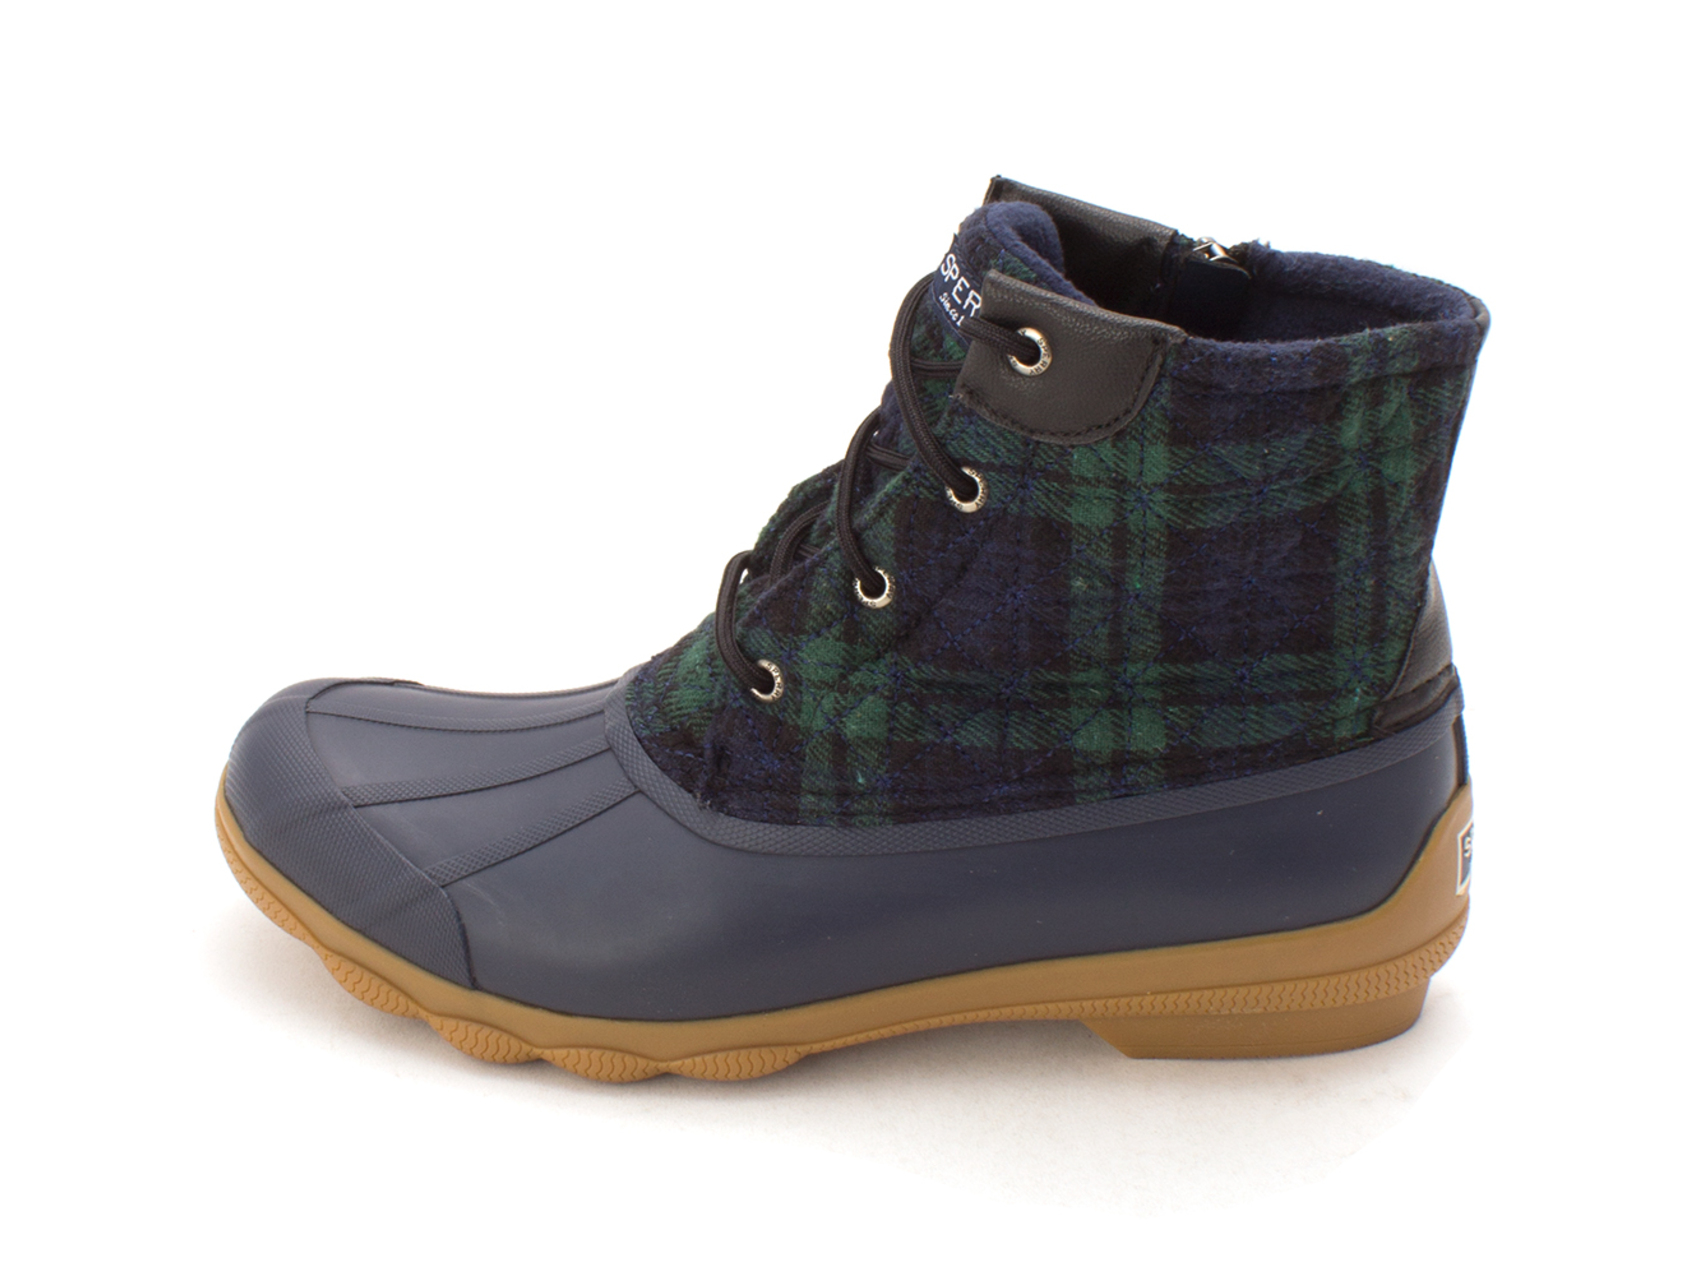 Sperry Womens syren gulf Closed Toe Ankle Cold Weather Boots, Green, Size 10.0